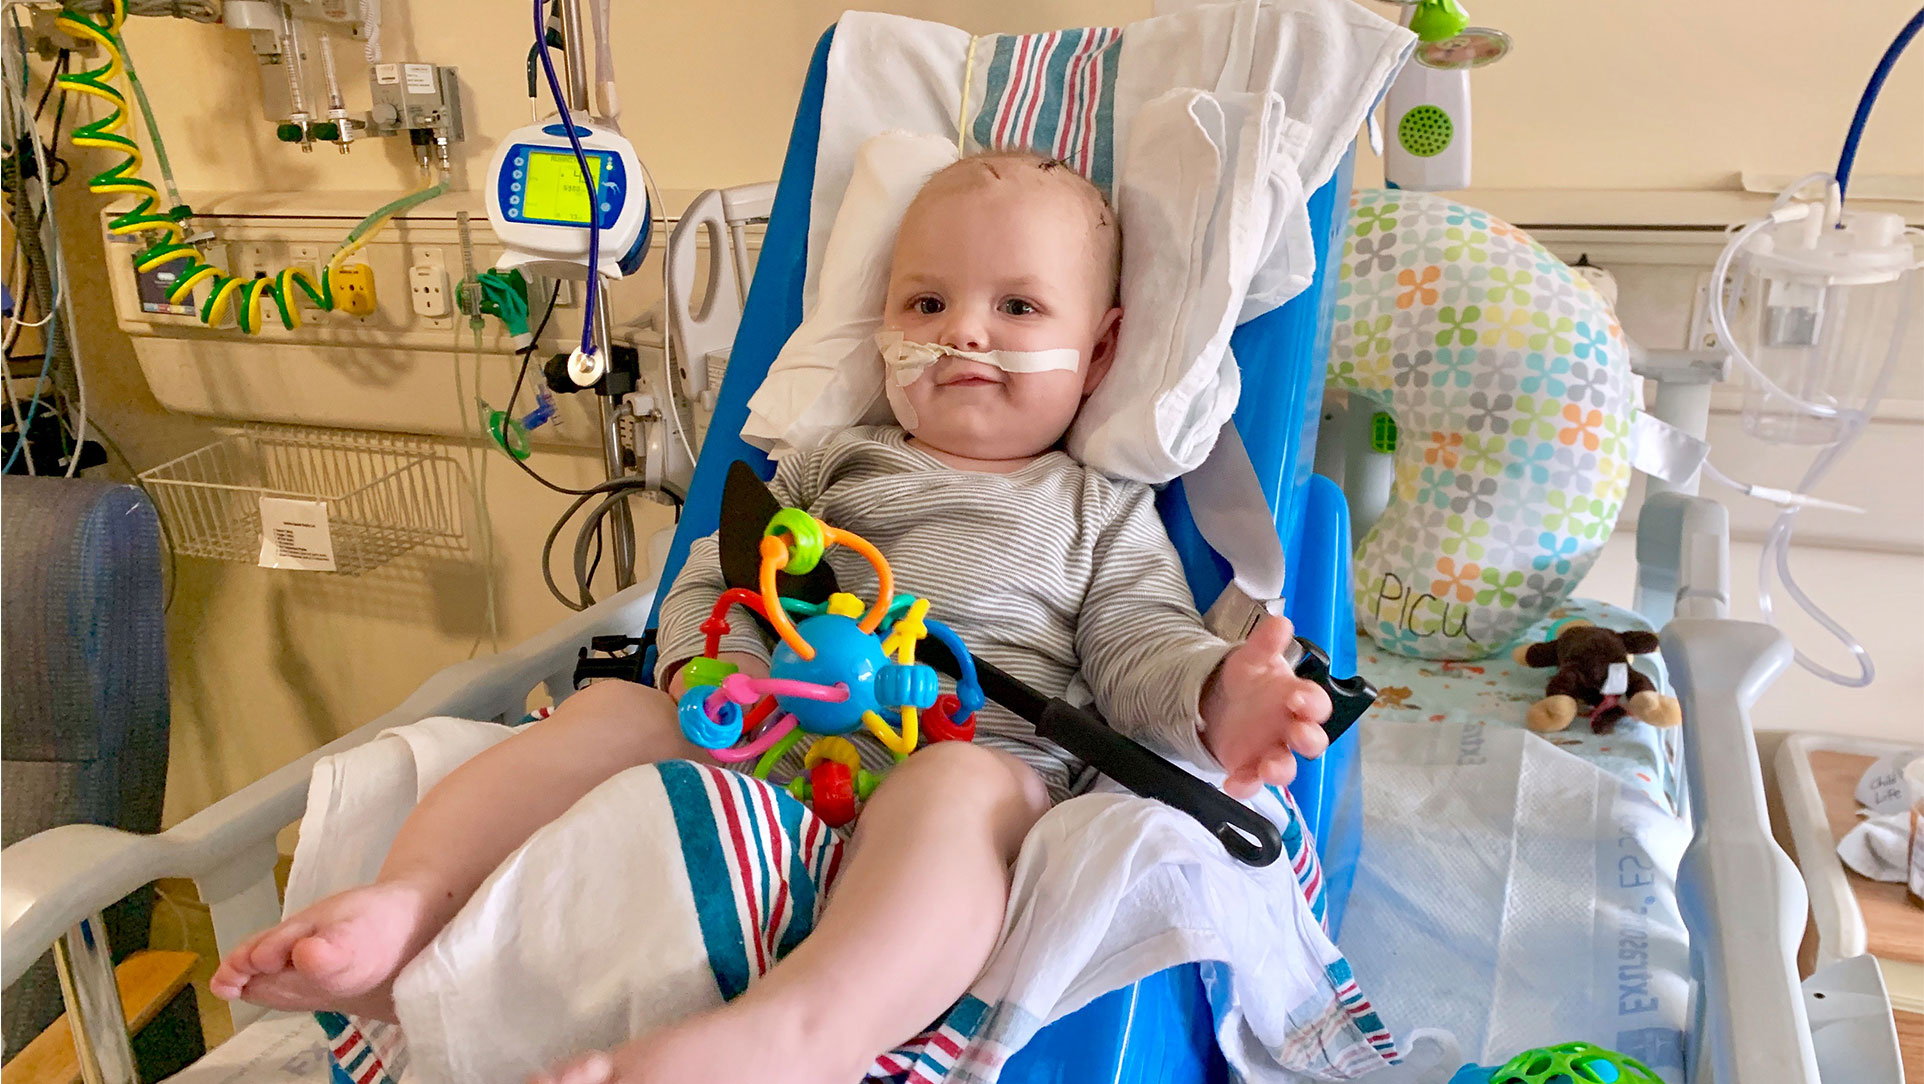 Rory is laying in his hospital bed with a colorful toy on his lap. He is wearing a grey striped outfit and has a tube in his nose.